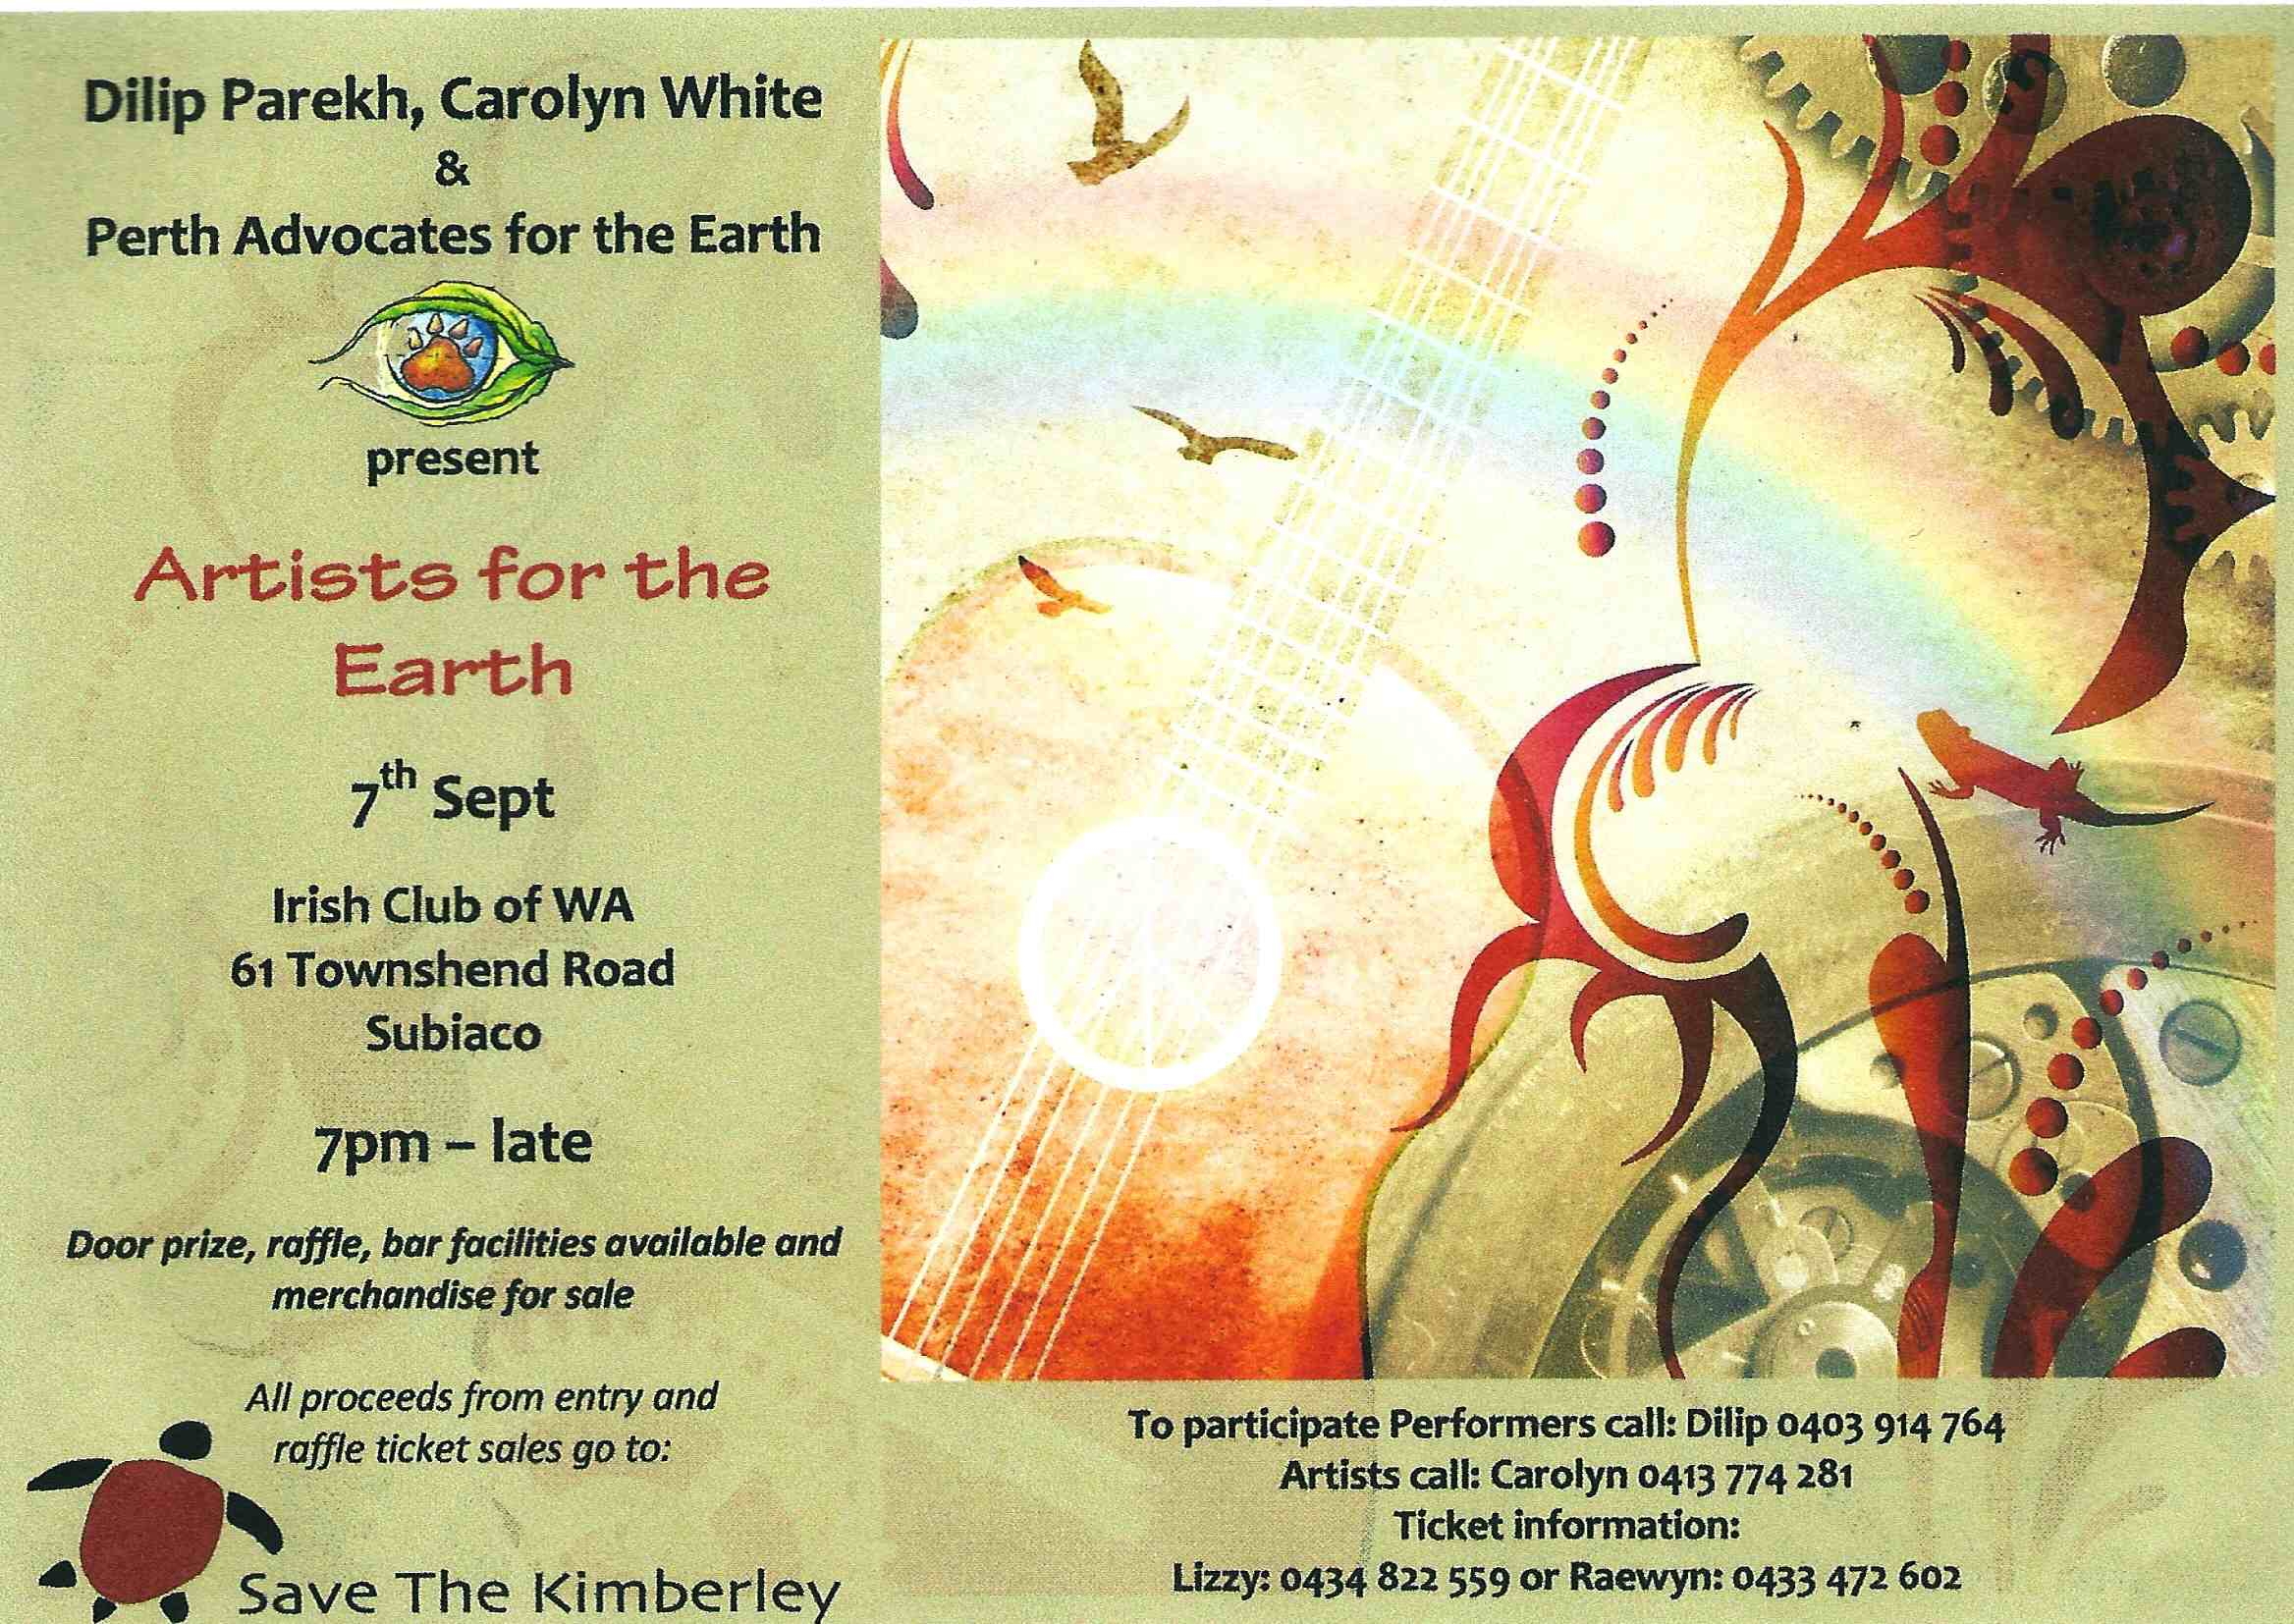 Perth Advocates for the Earth event flyer